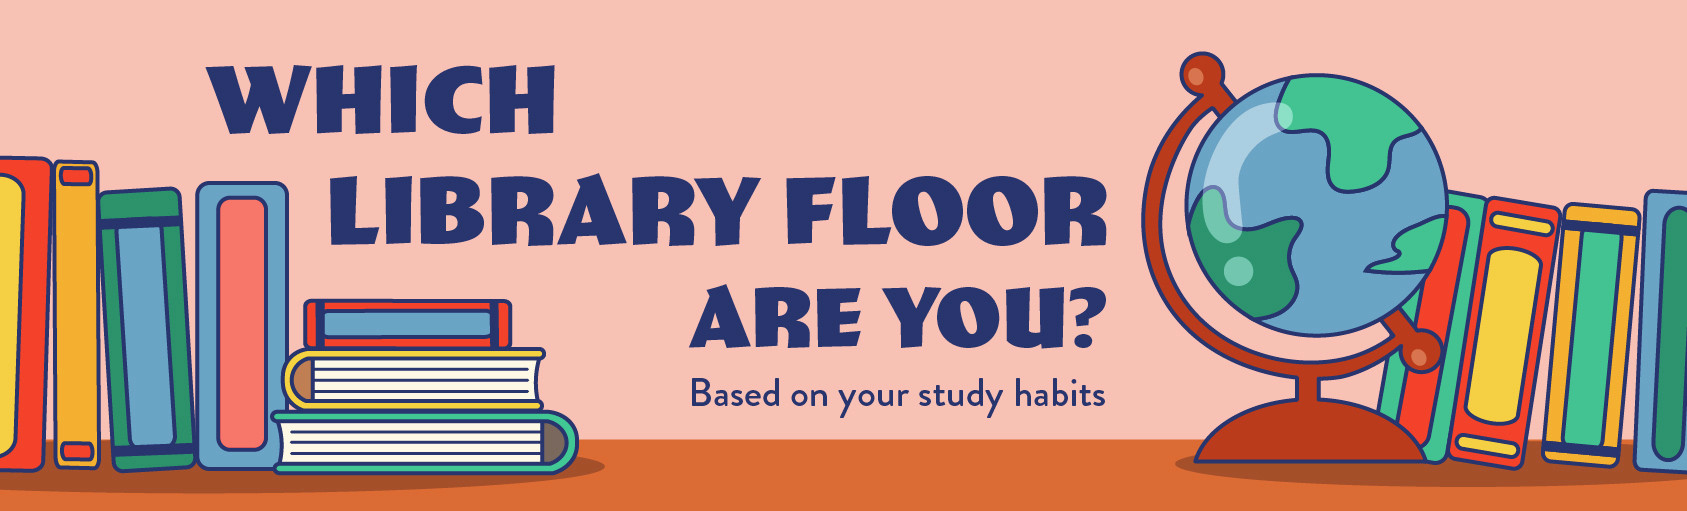 Quiz: Which Library Floor Are You Based on Your Study Habits banner